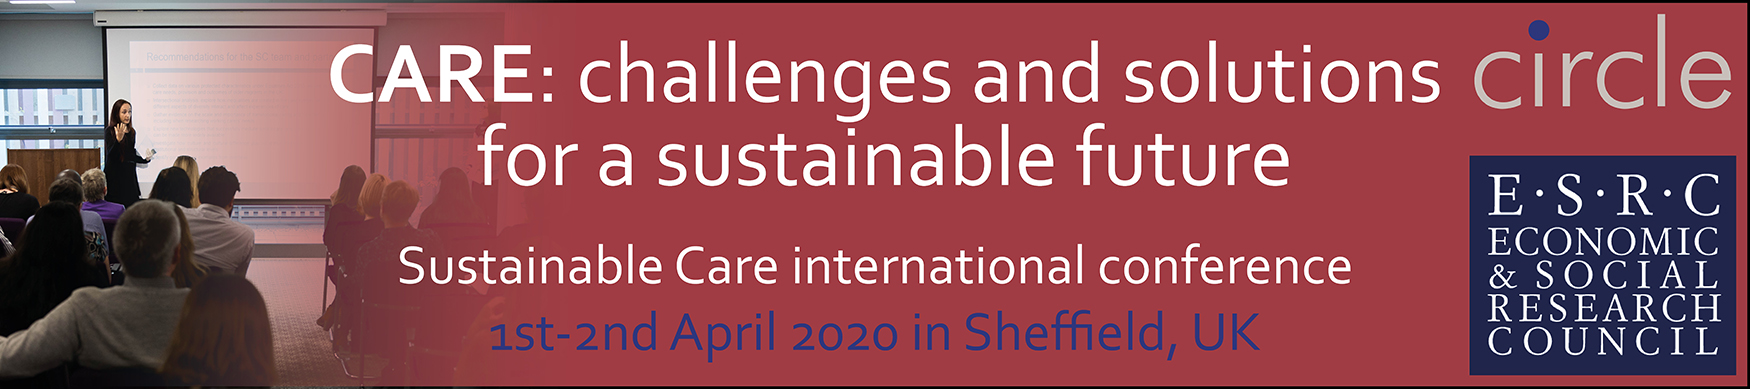 Sustainable Care international conference banner